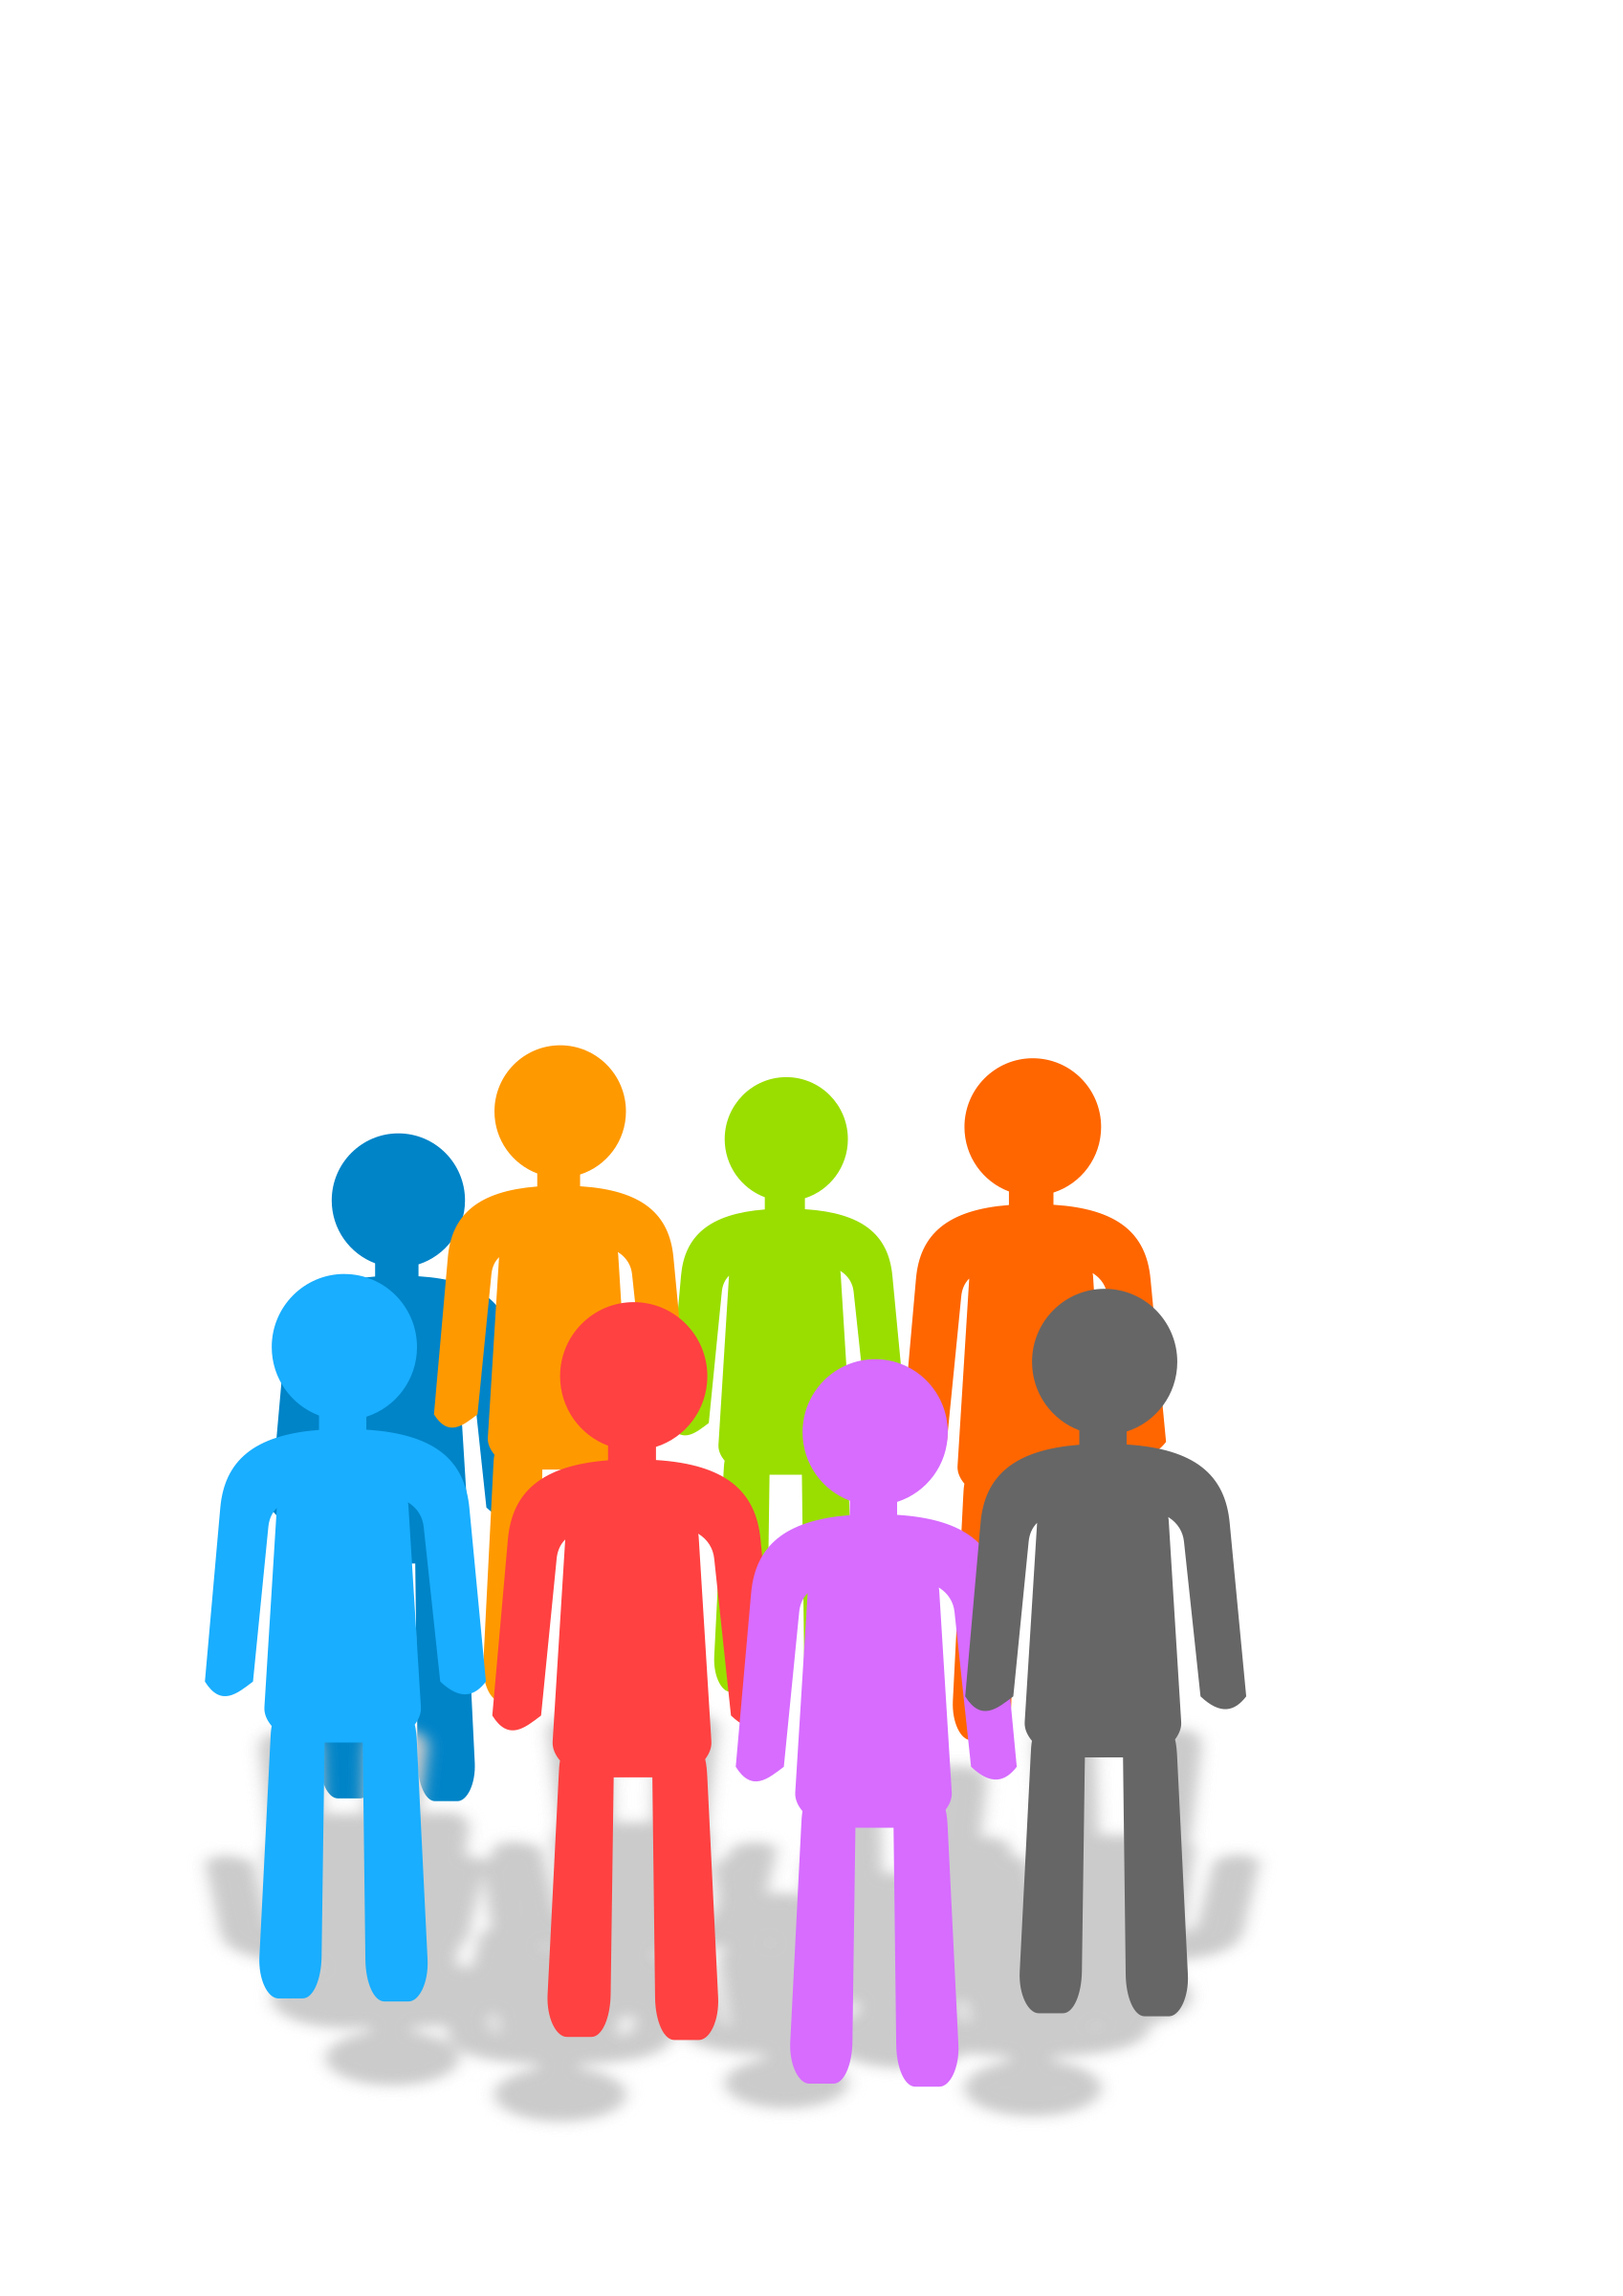 clipart population Group of People Clip Art Transparent Small Group of People Clip Art